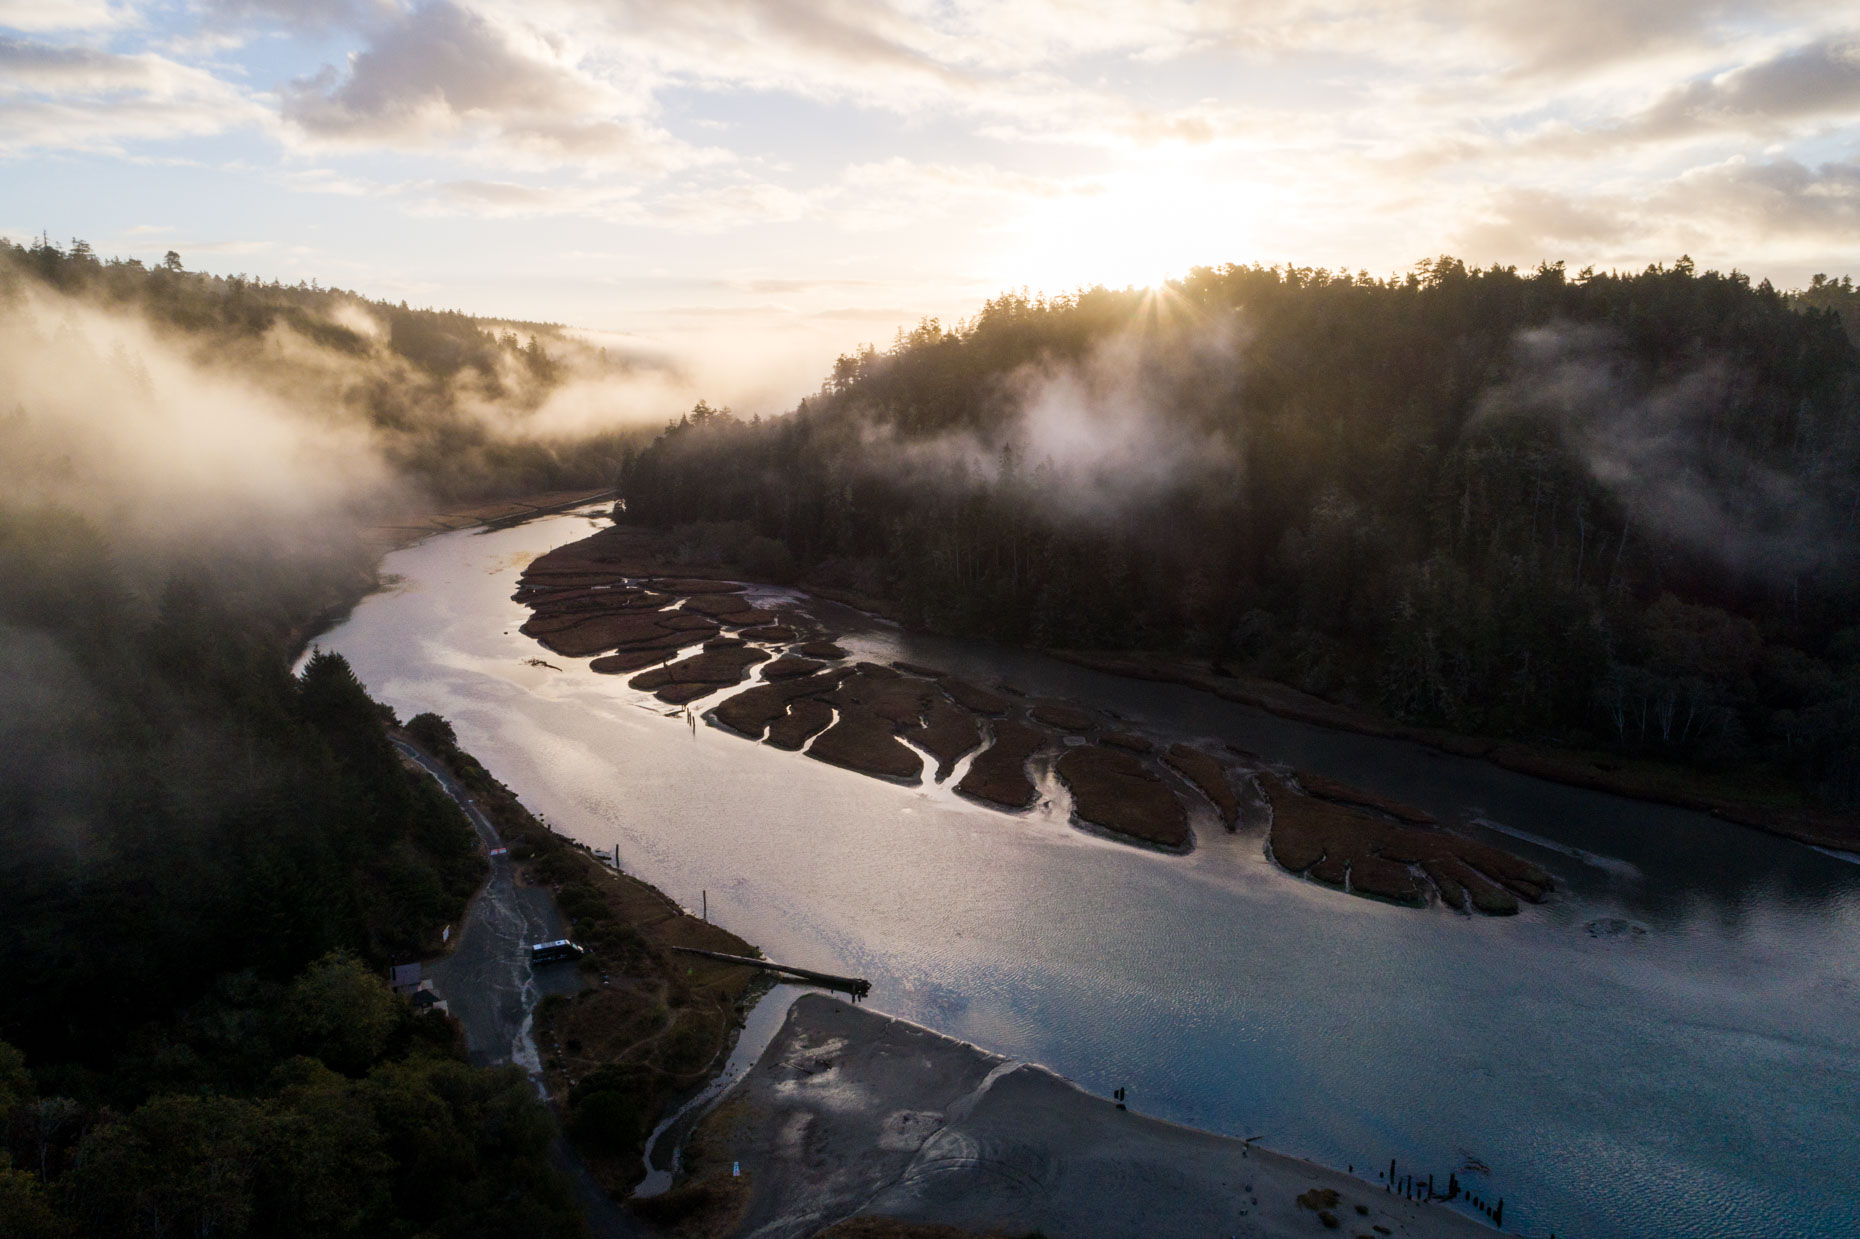 Drone - Big River, Mendocino, California